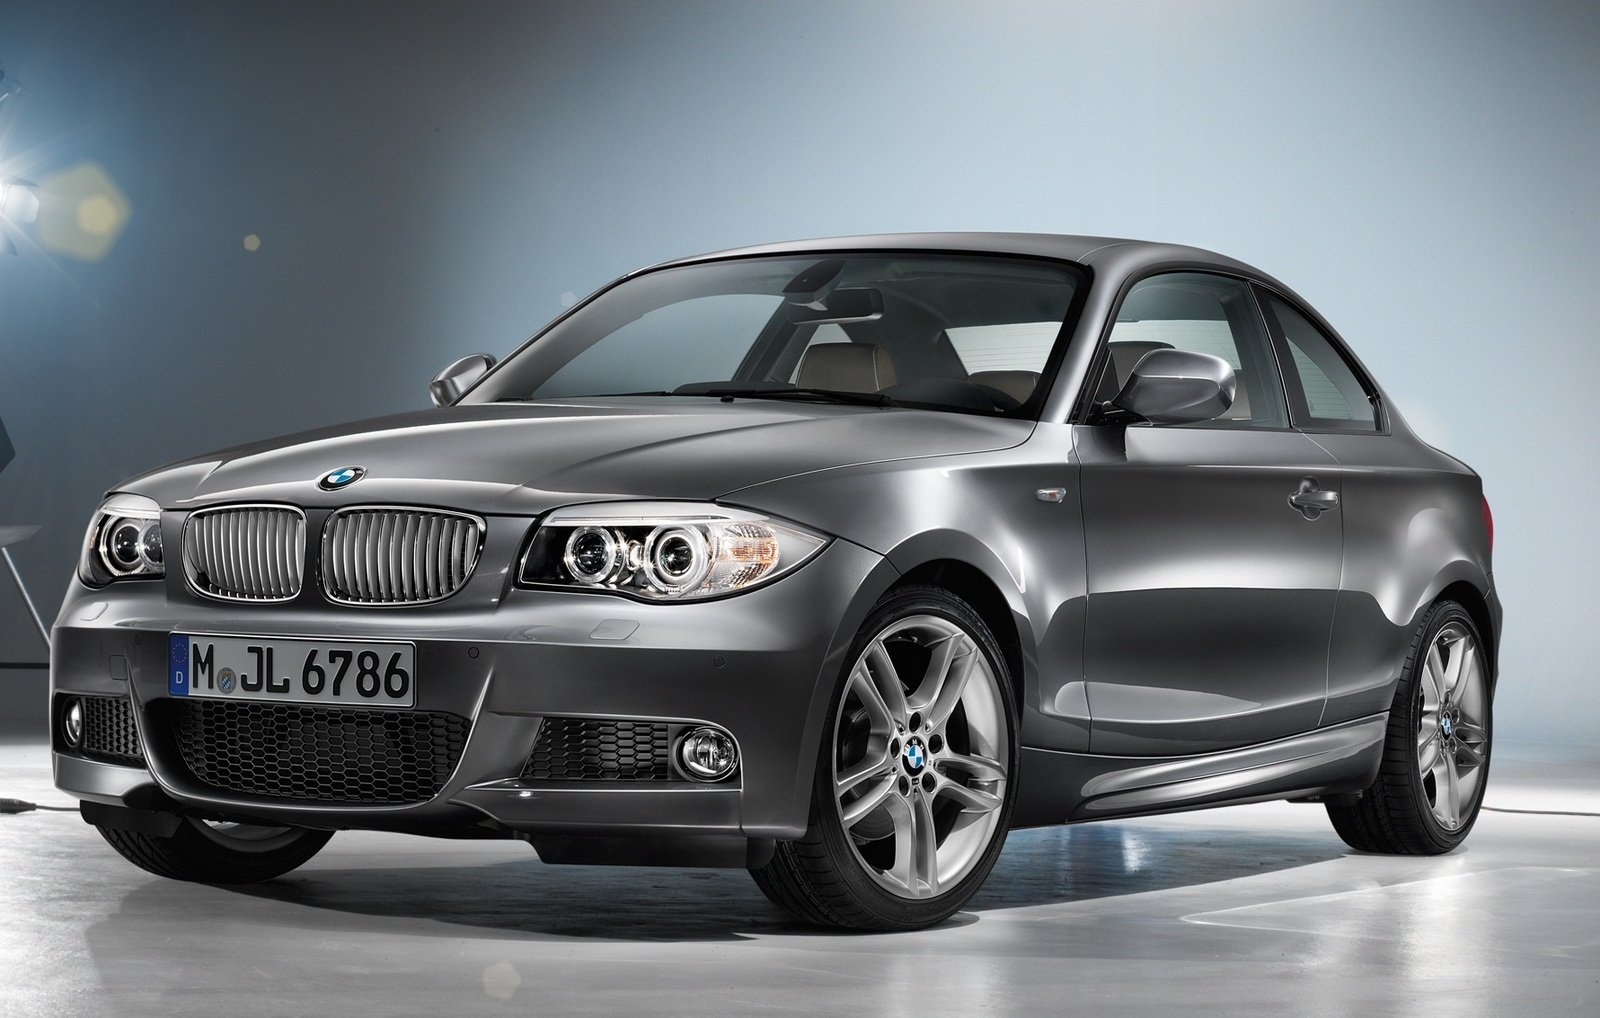 2013 bmw 1 series coupe and convertible lifestyle editions review top speed. Black Bedroom Furniture Sets. Home Design Ideas